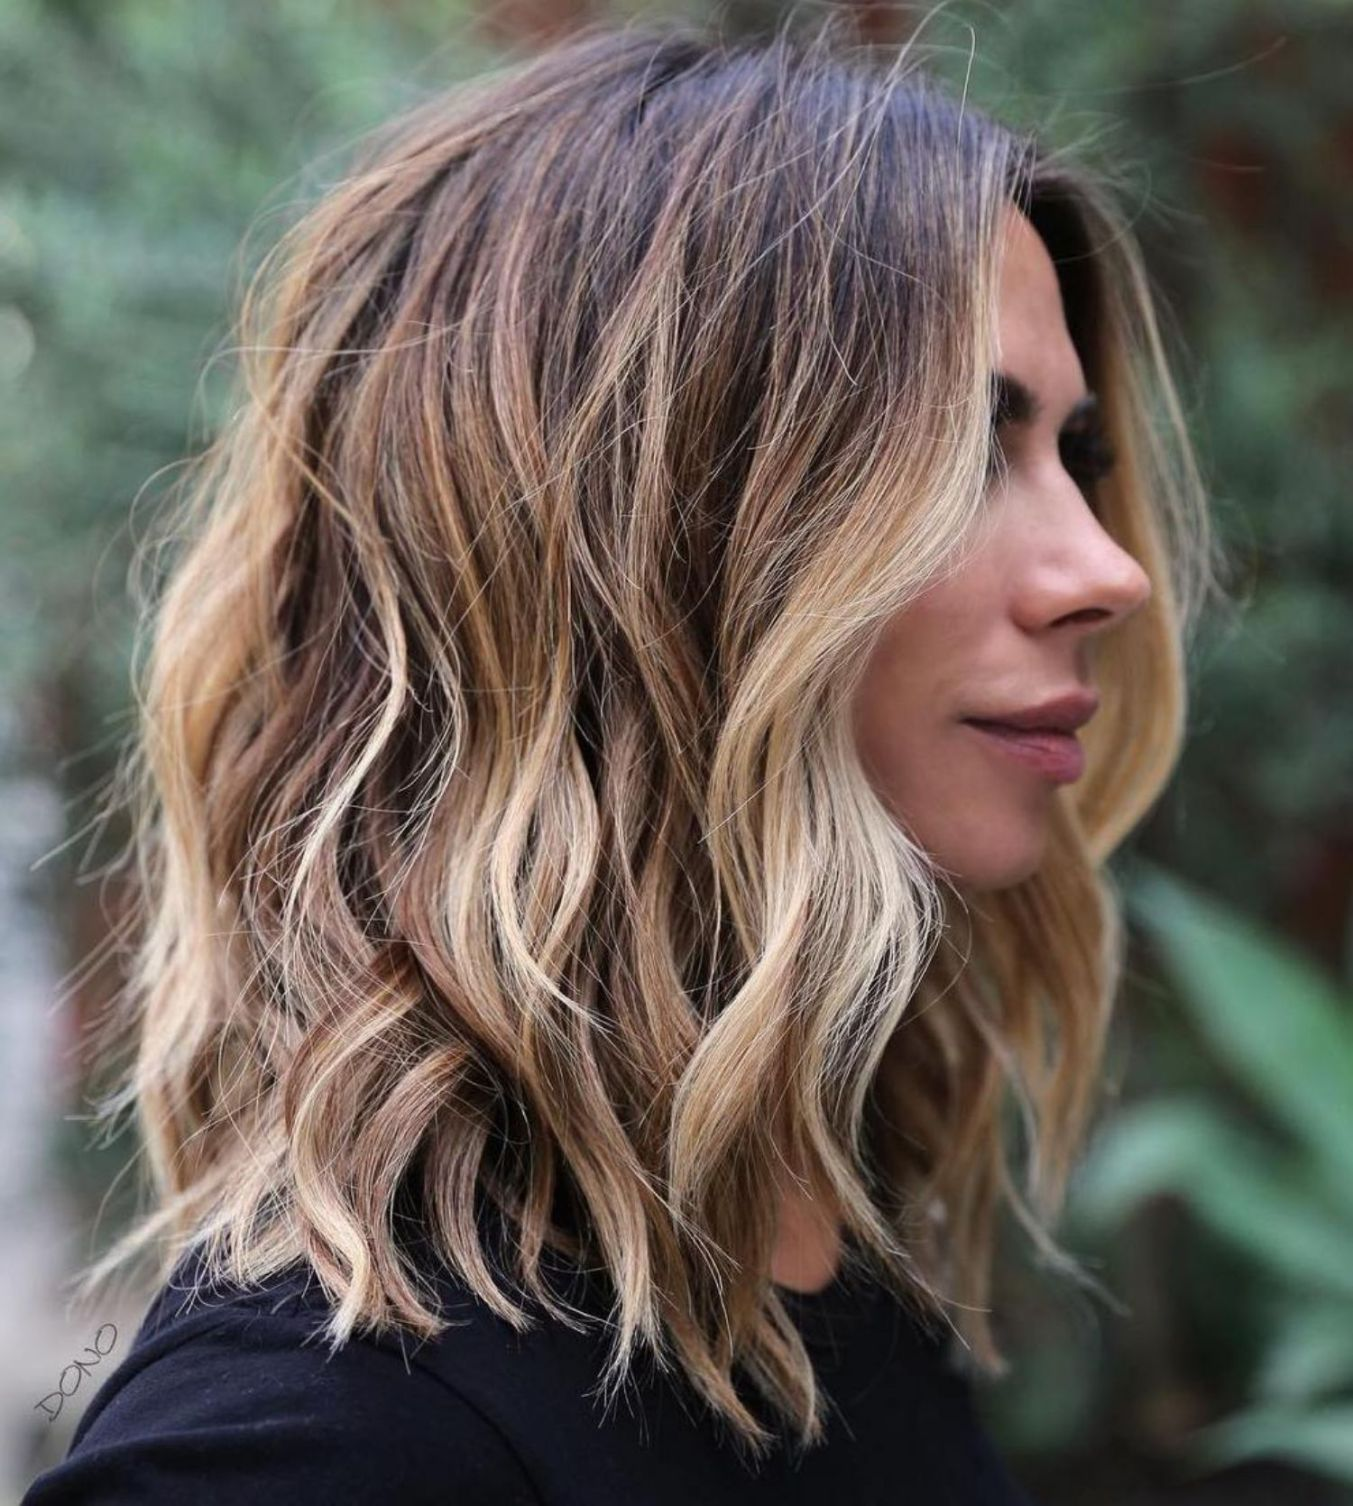 60 Fun and Flattering Medium Hairstyles for Women Gallery